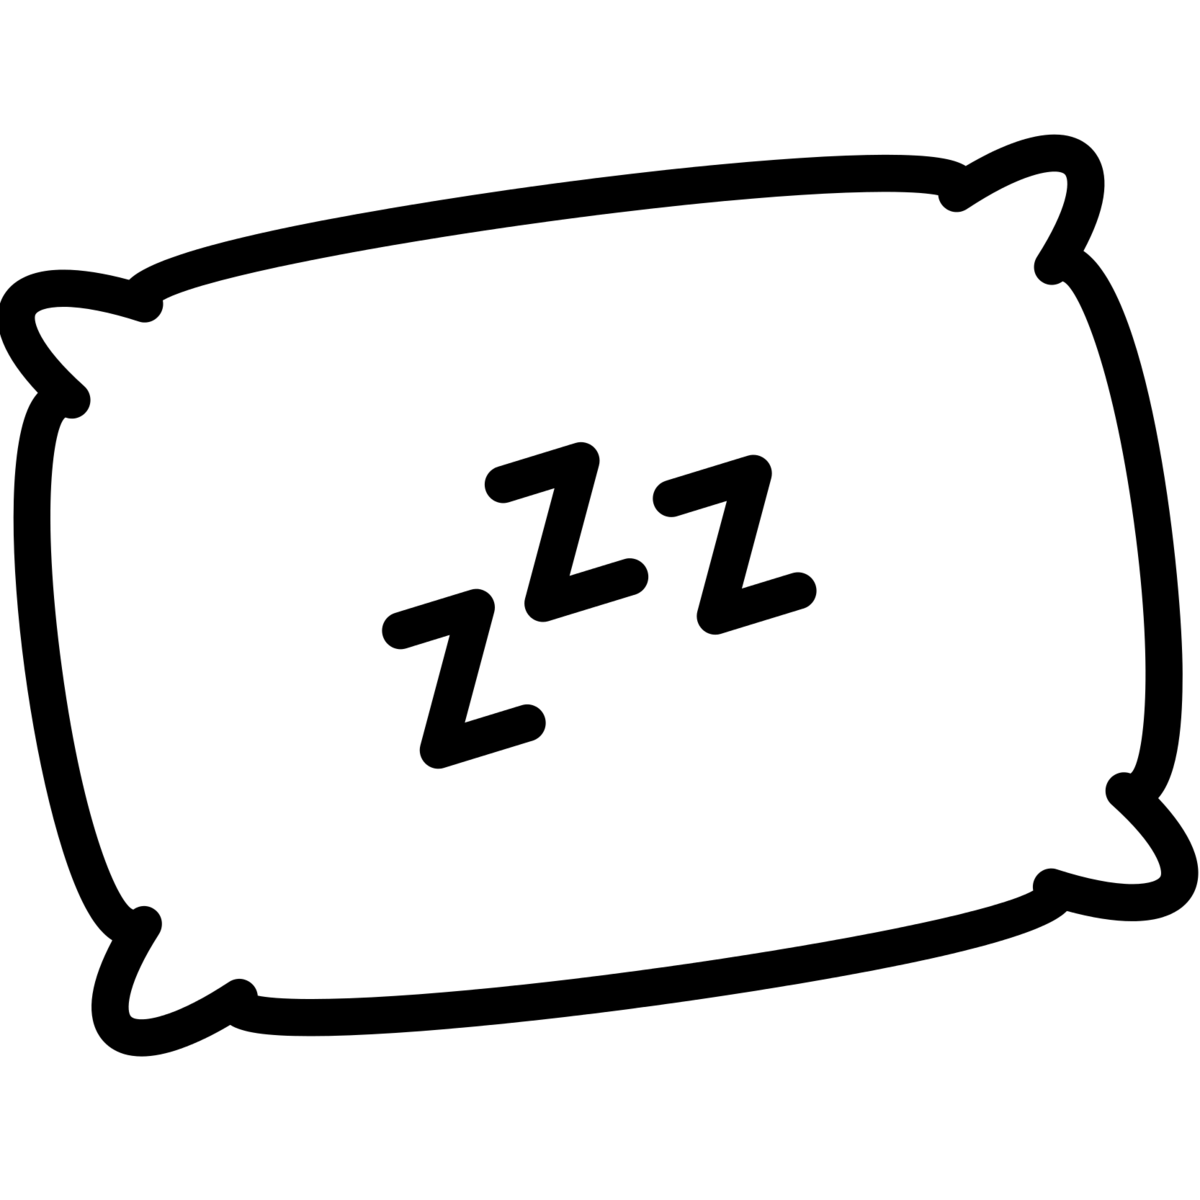 Best Sleep Clipart